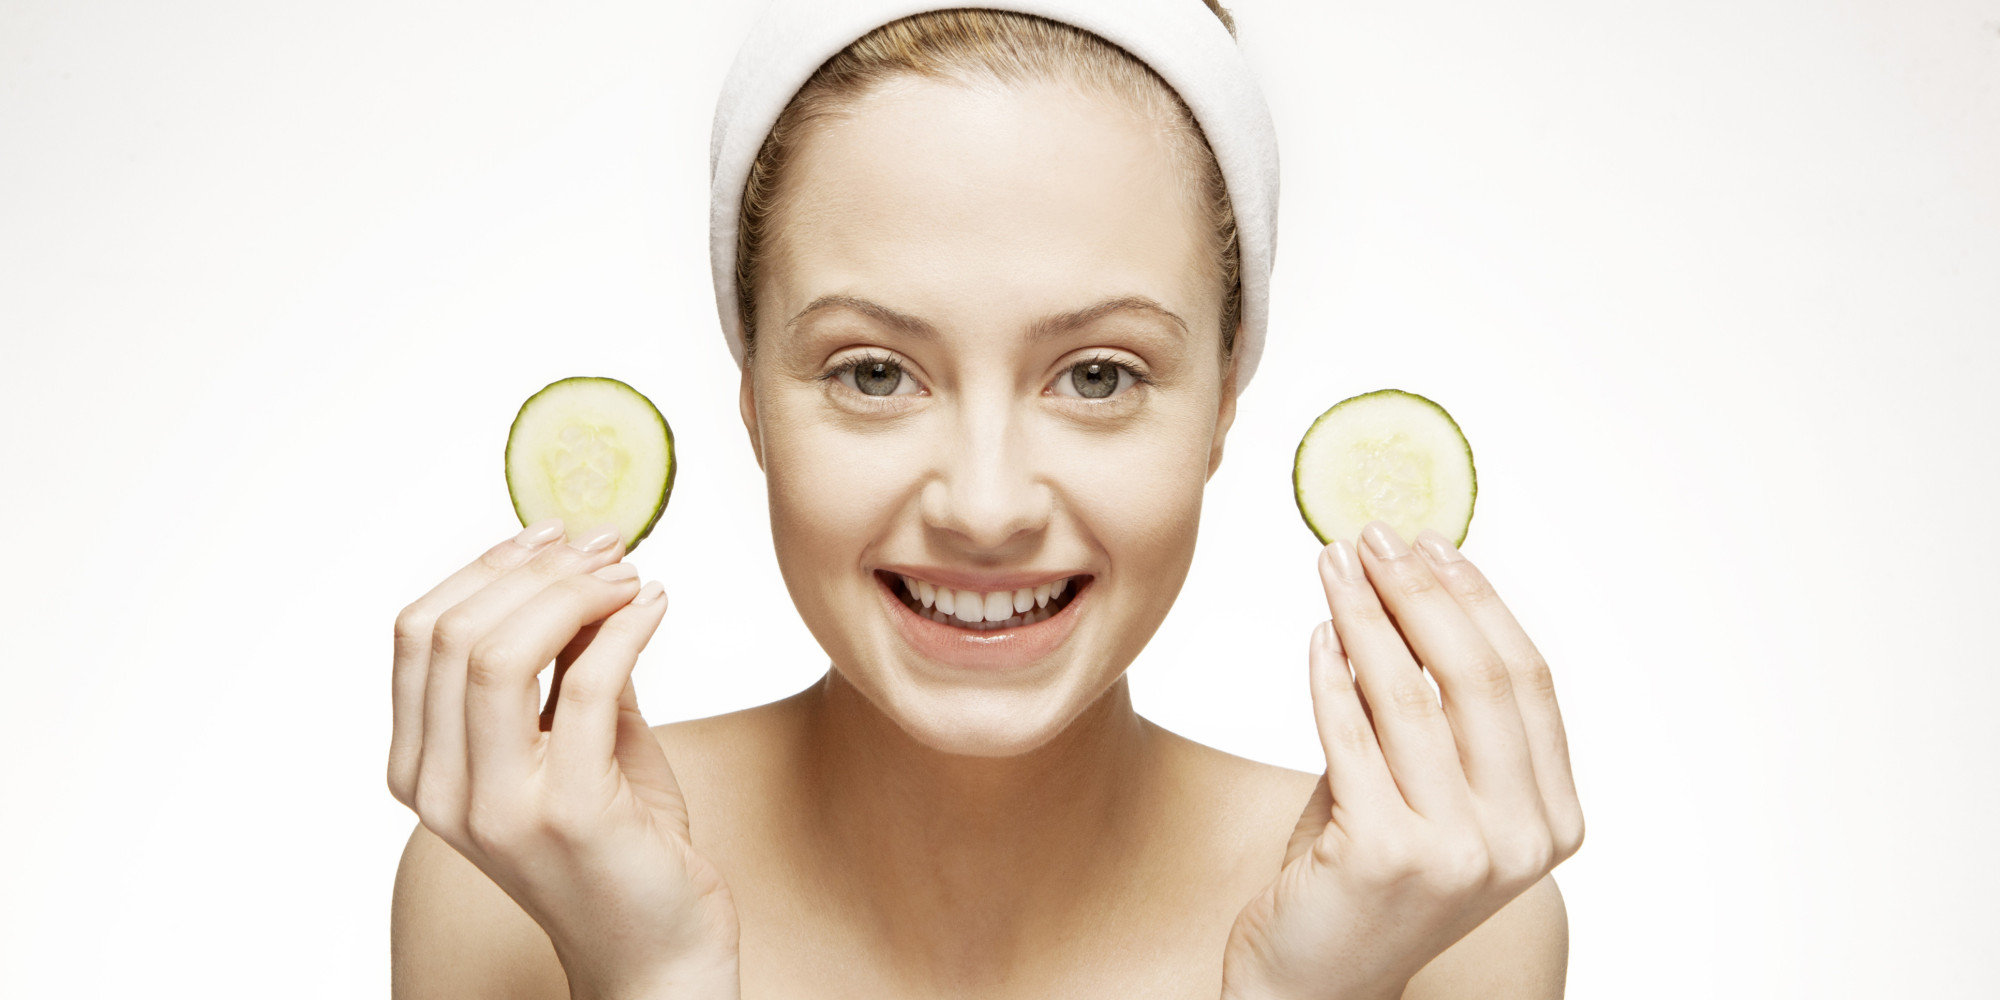 Skin Care Regimen Using Homemade Products